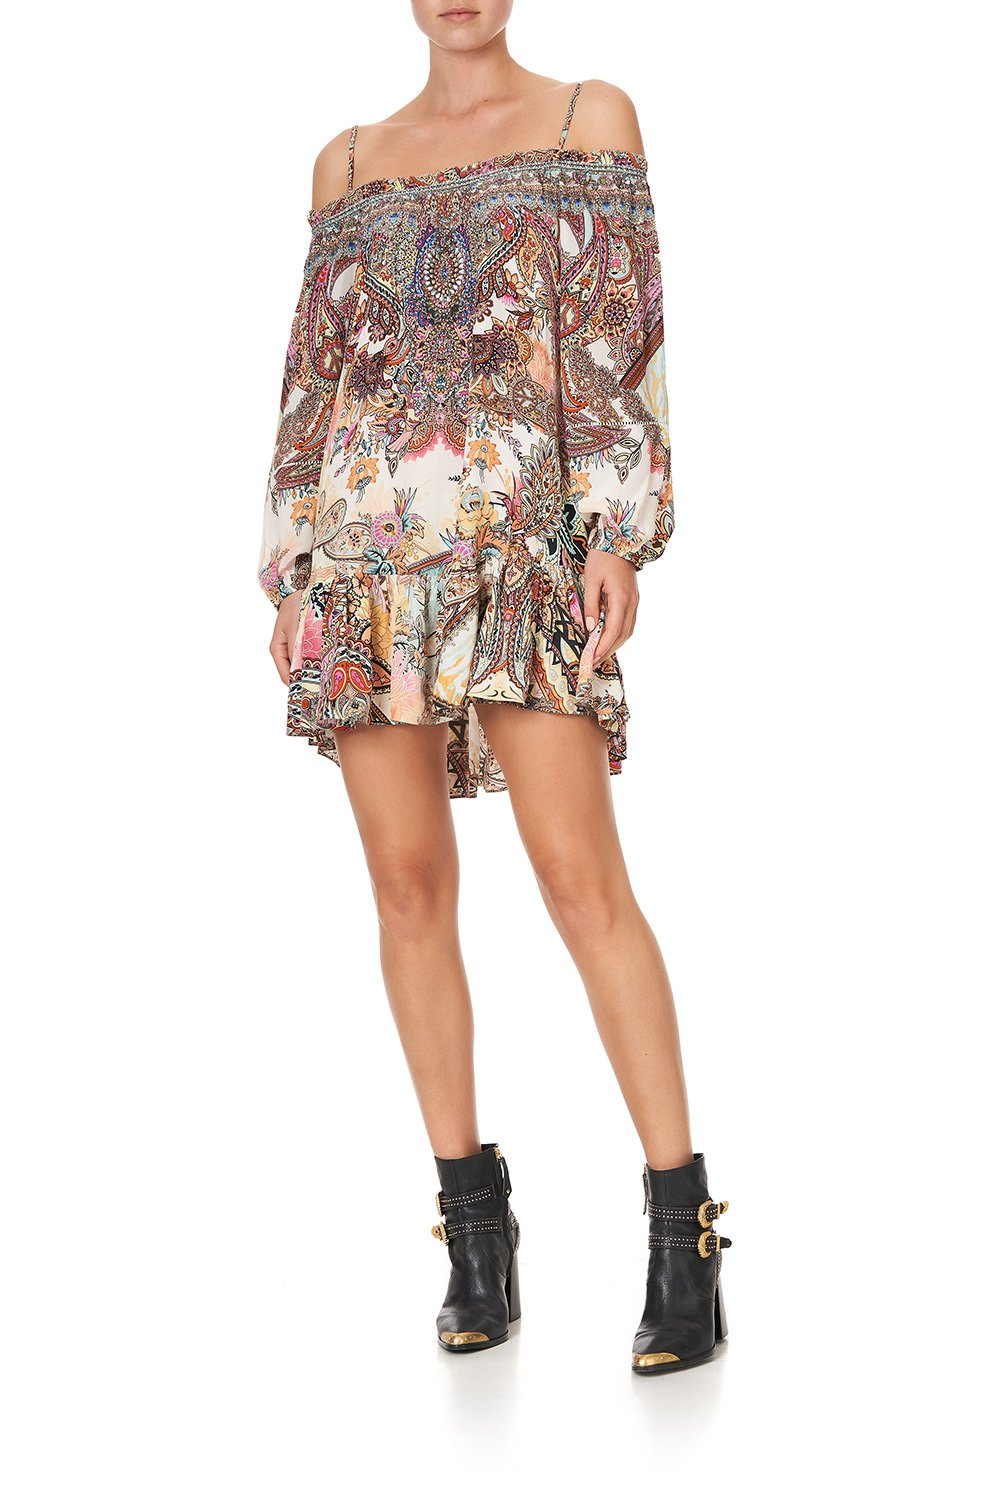 OFF SHOULDER DRESS WITH STRAPS CARNABY DISCO